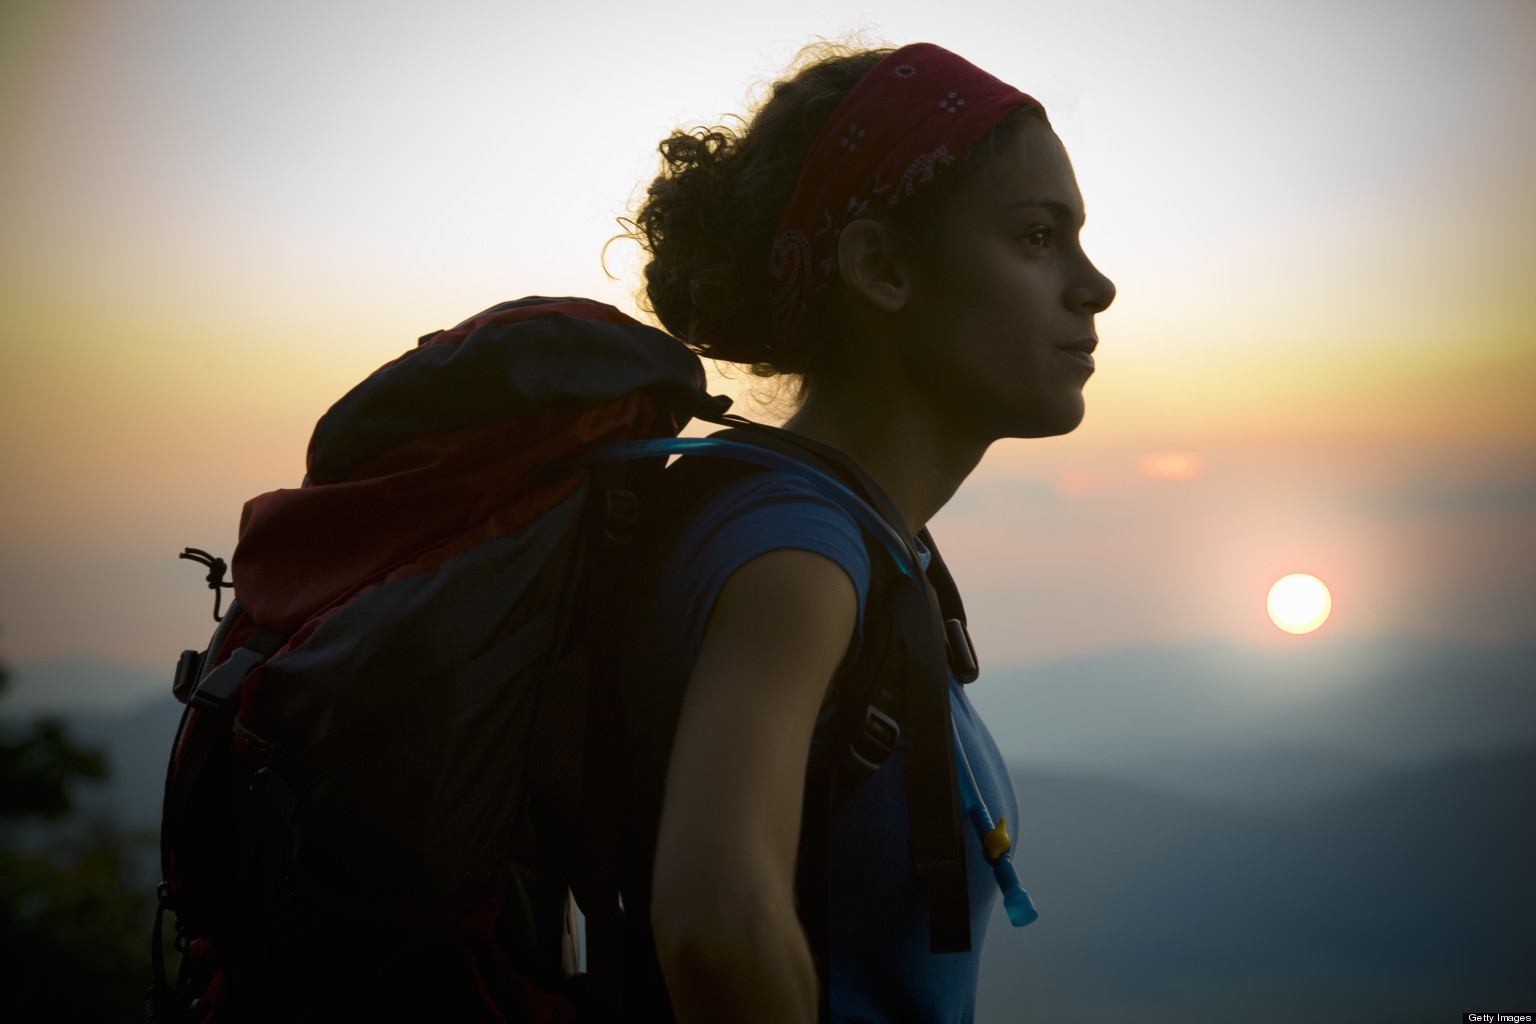 Experiences from the diary of a solo traveller